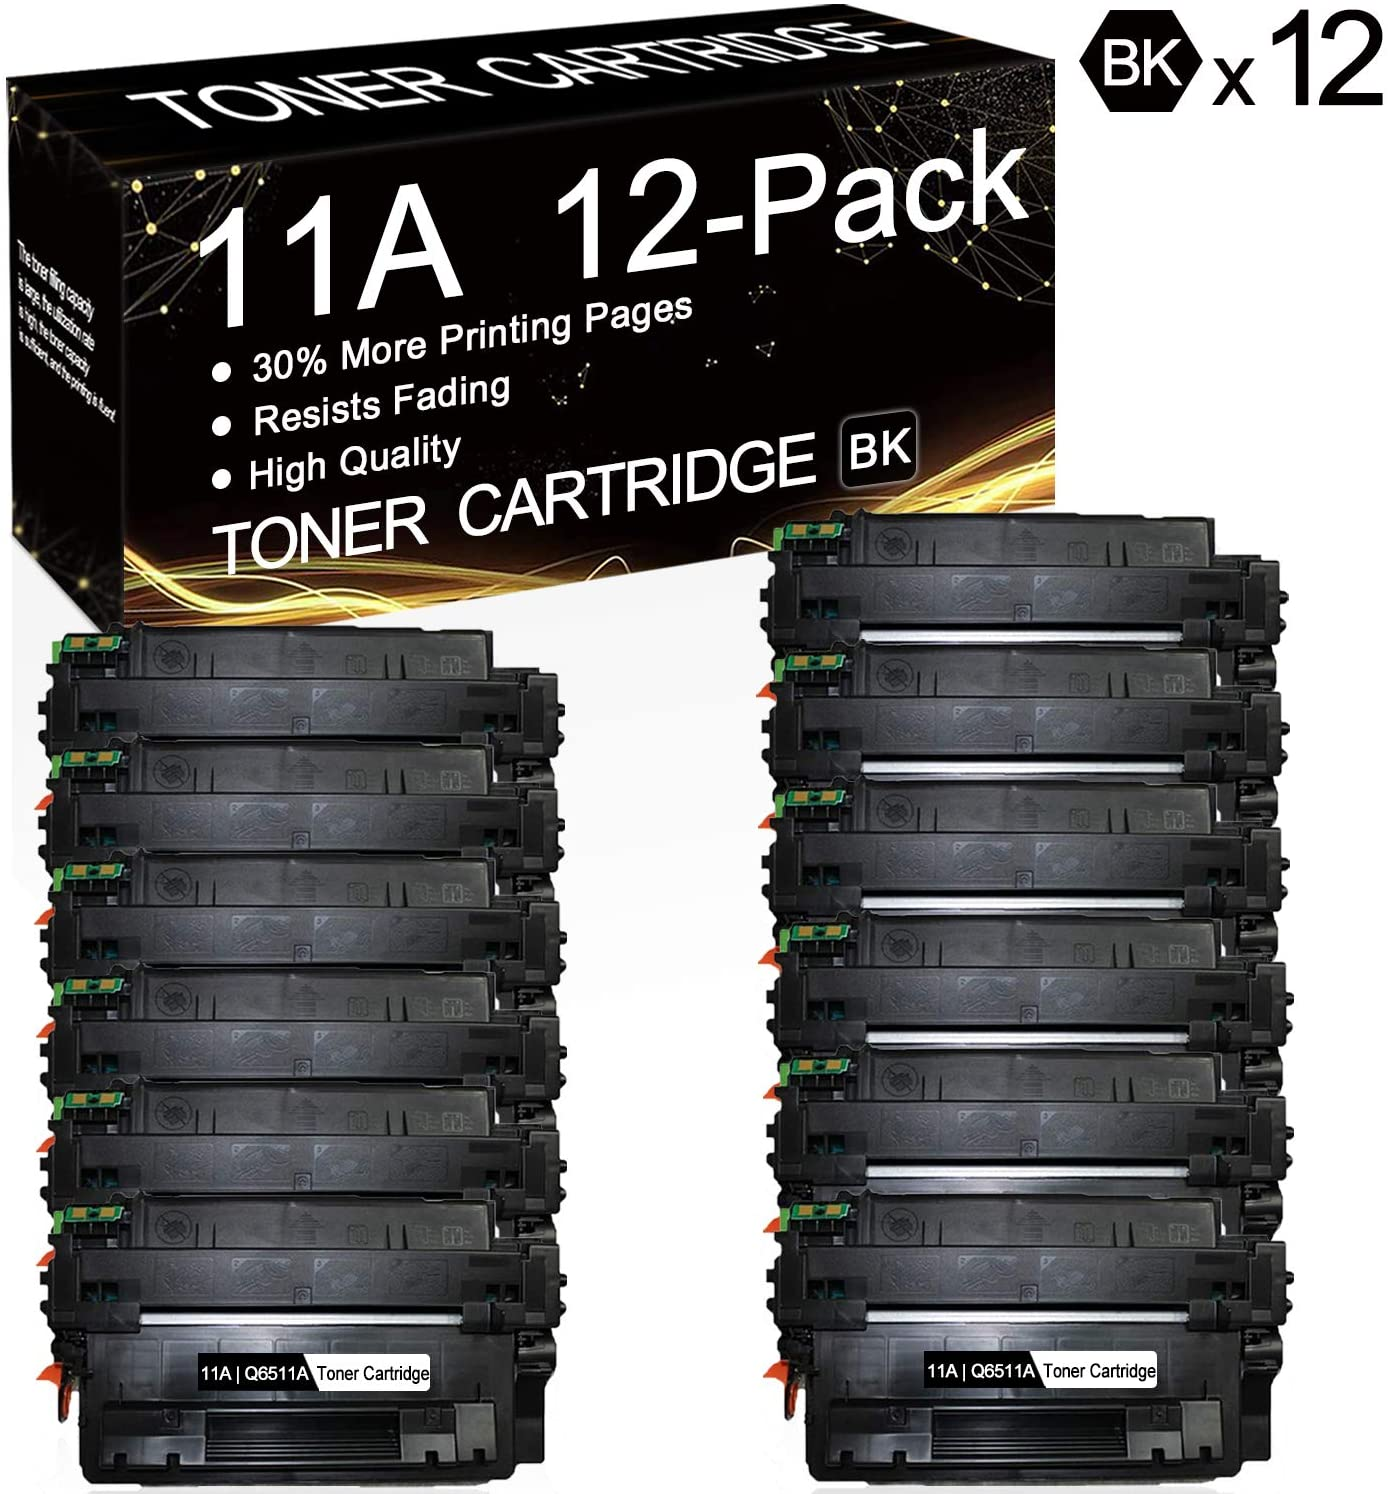 11A | Q6511A (12-Pack, Black) Compatible 11A | Q6511A Toner Cartridge Replacement for HP Laserjet 2430 2430tn 2430dtn 2430n 2410 2420 2420d 2420n 2420dn Printers, Sold by SinaToner.